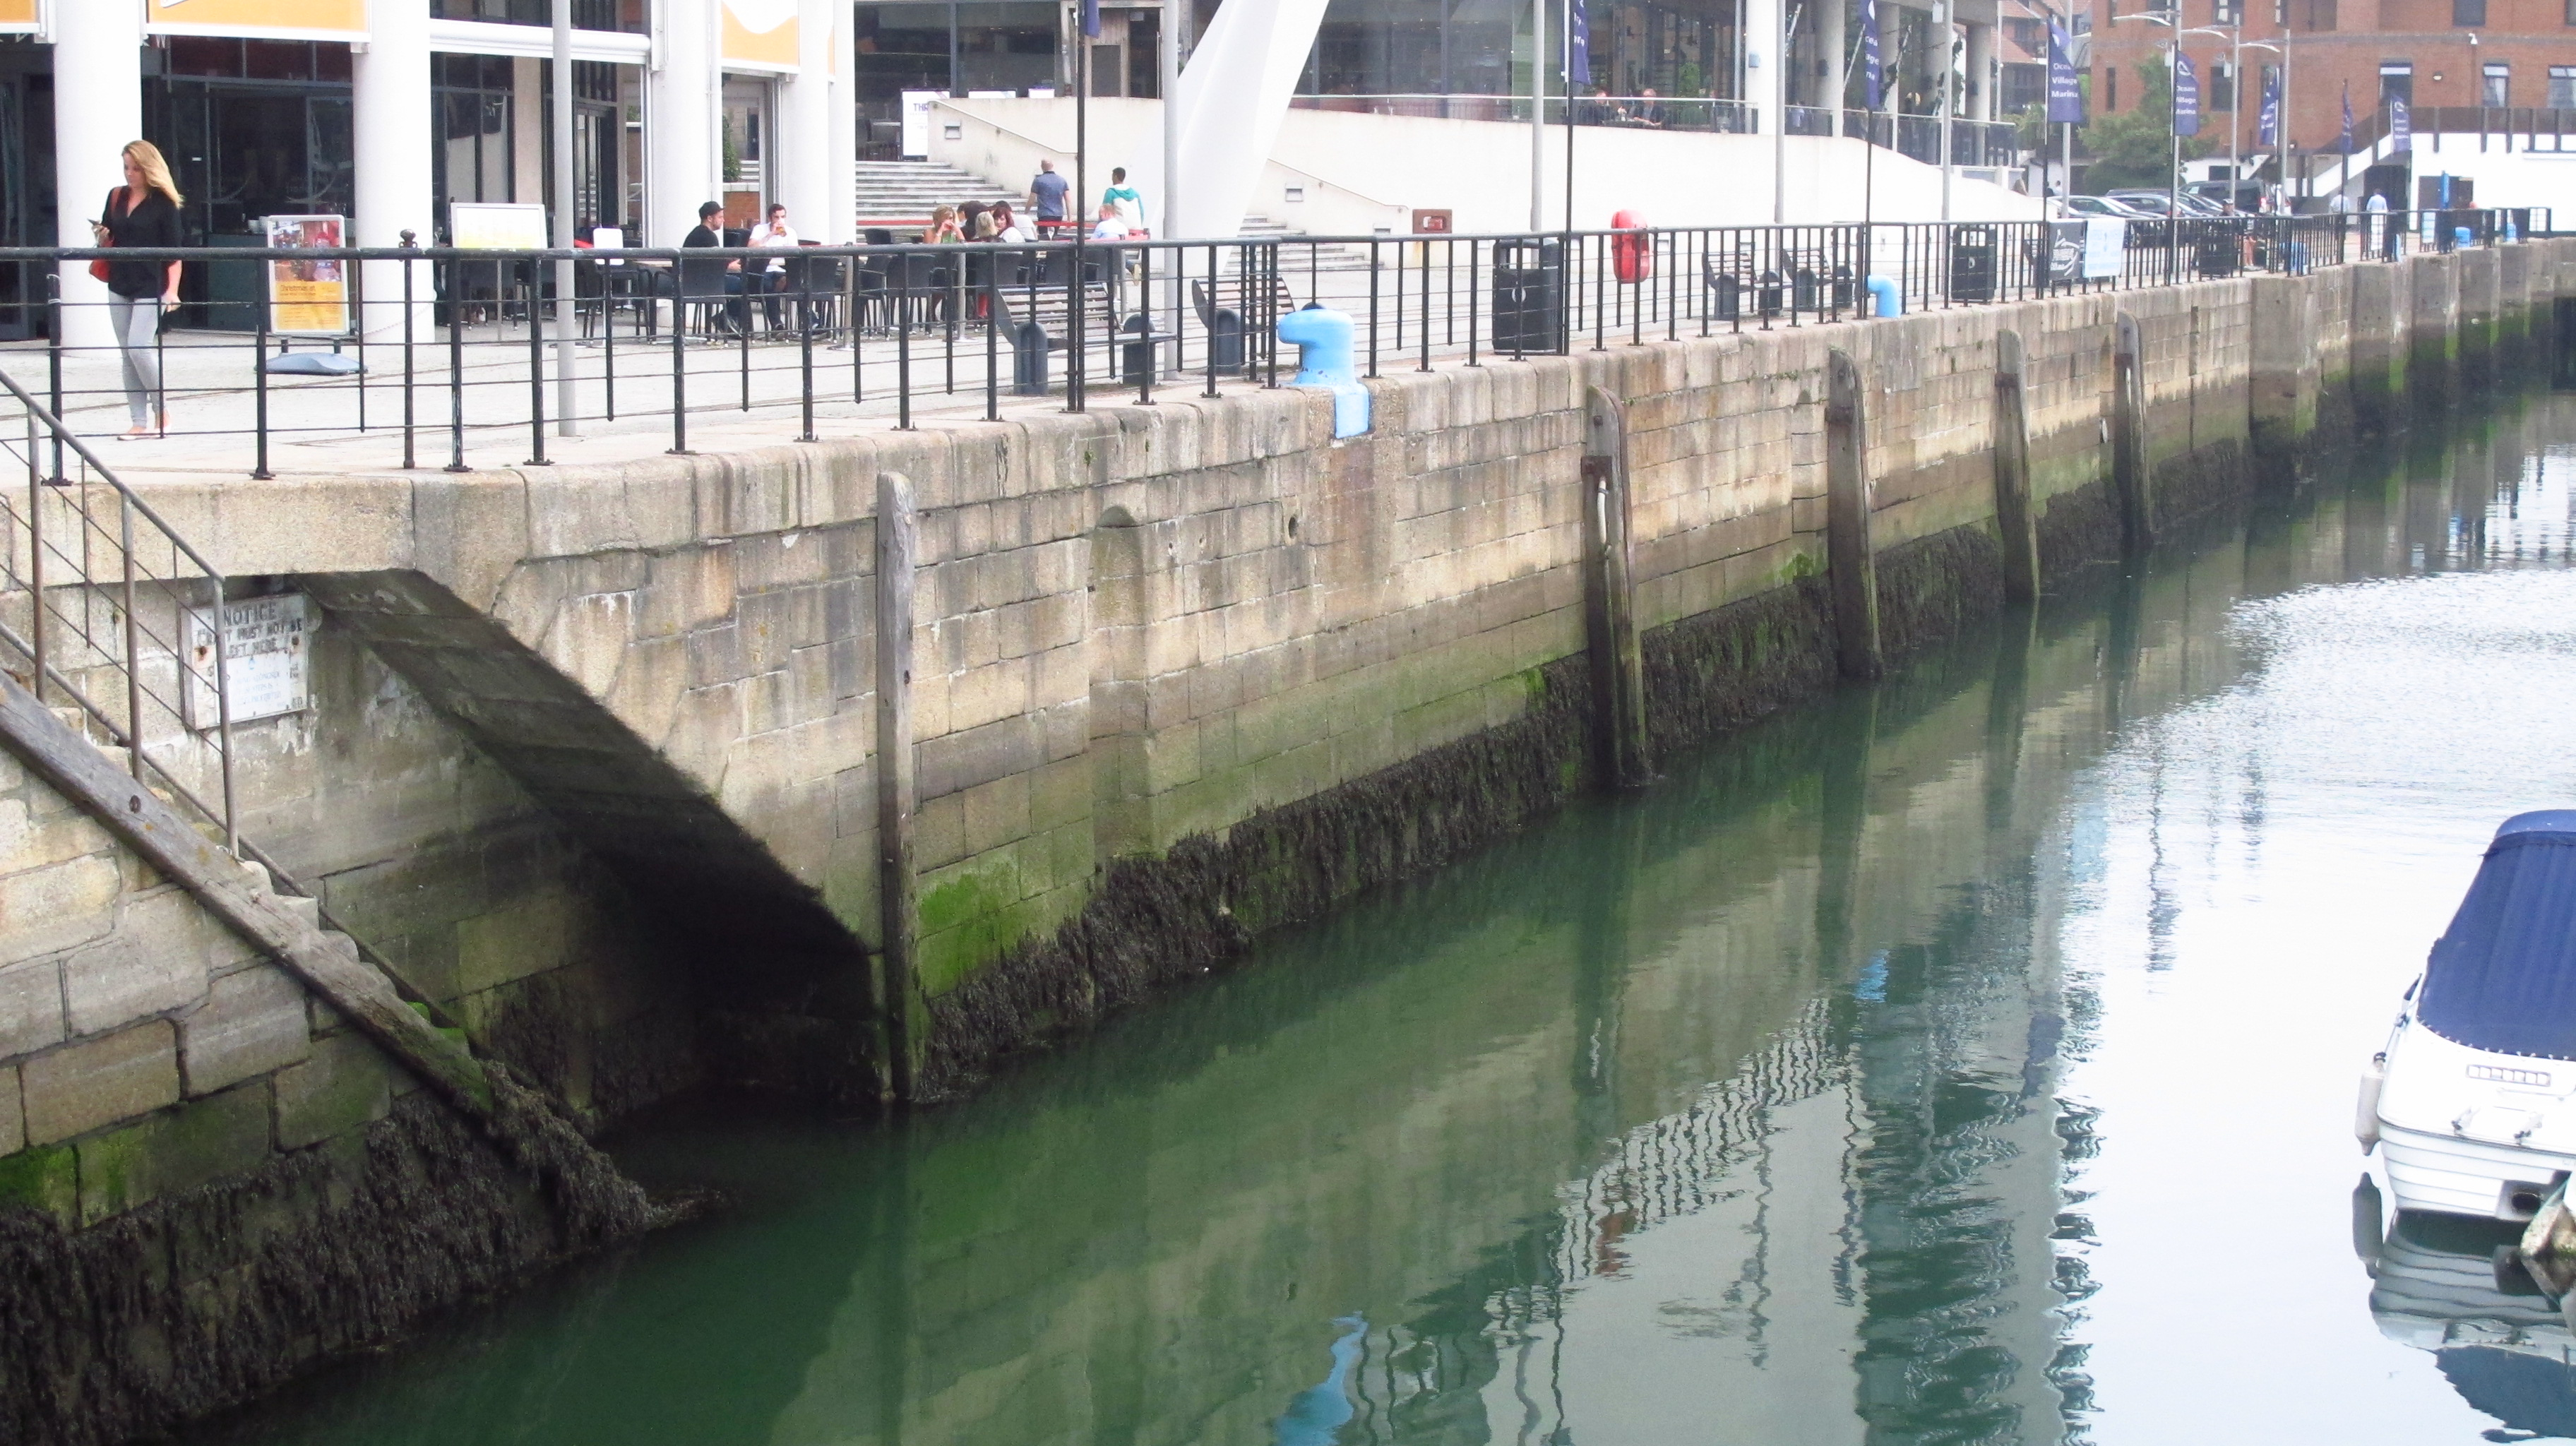 File:Dock Basin Wall Ocean Village Southampton.JPG - Wikimedia Commons